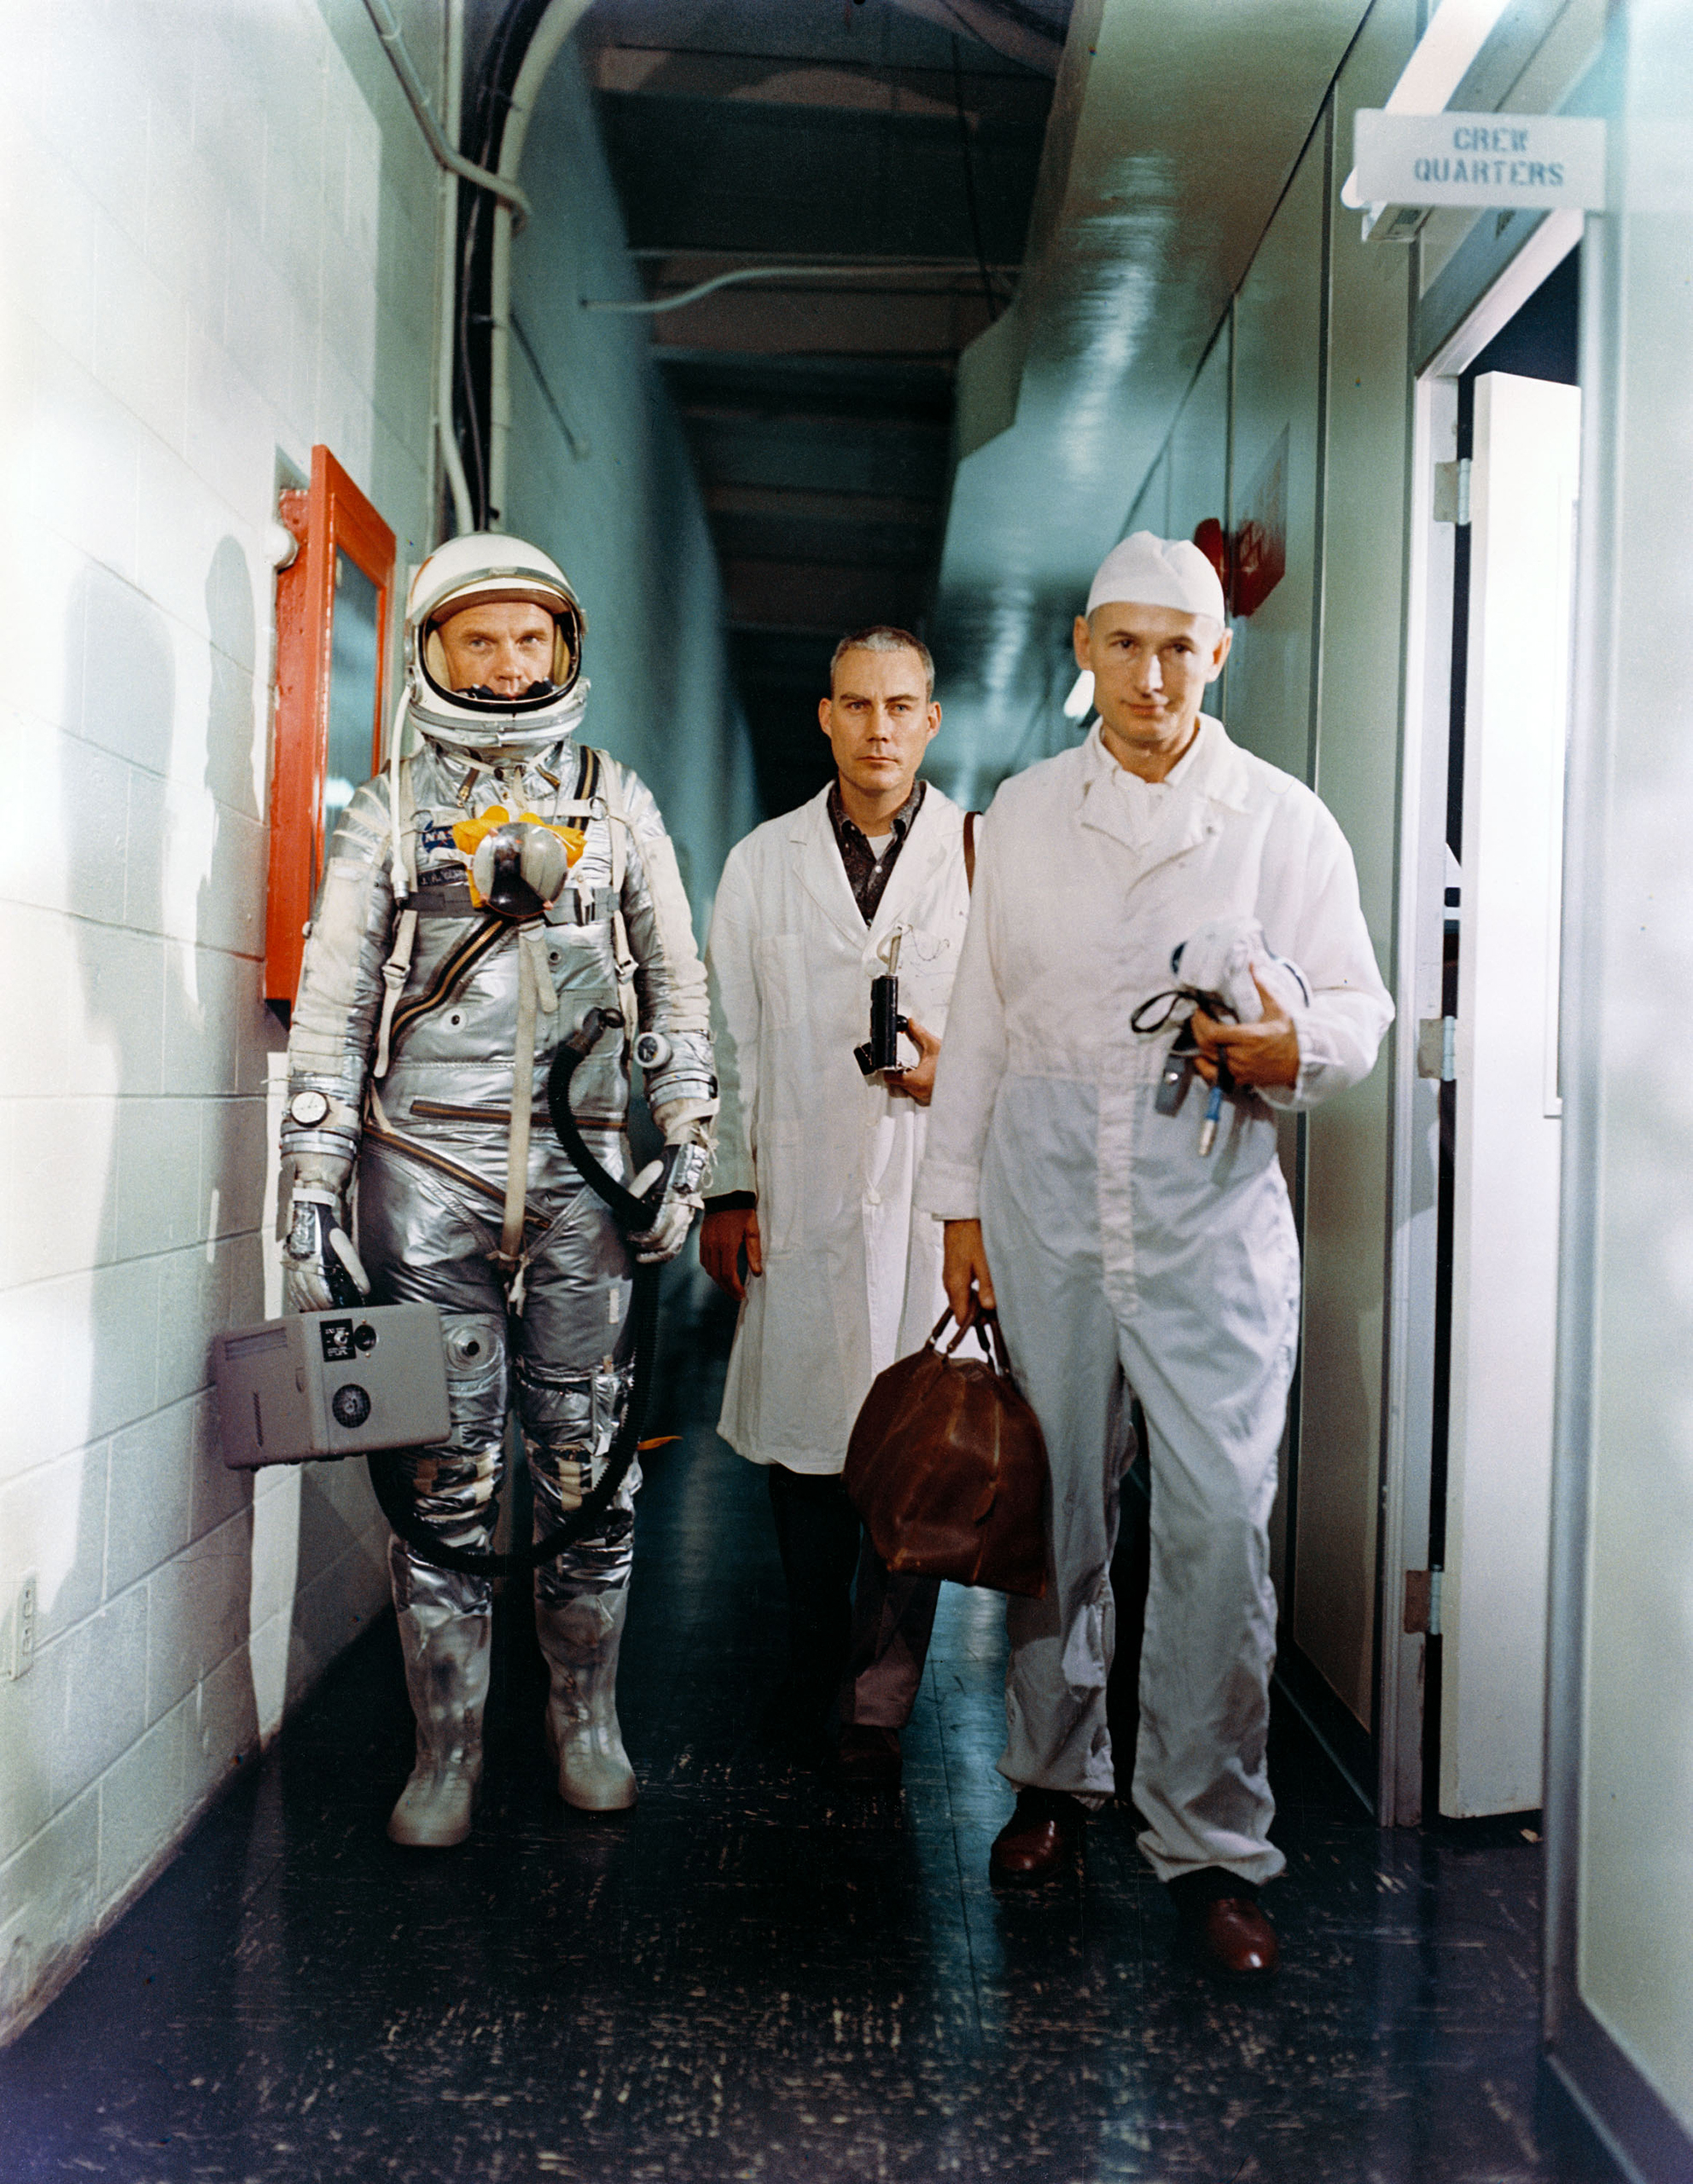 <b>Suited Up</b> Glenn's walk into history began in an unprepossessing hallway as he left the crew quarters on the morning of his Feb. 20, 1962, launch in the company of a flight surgeon and an equipment specialist.